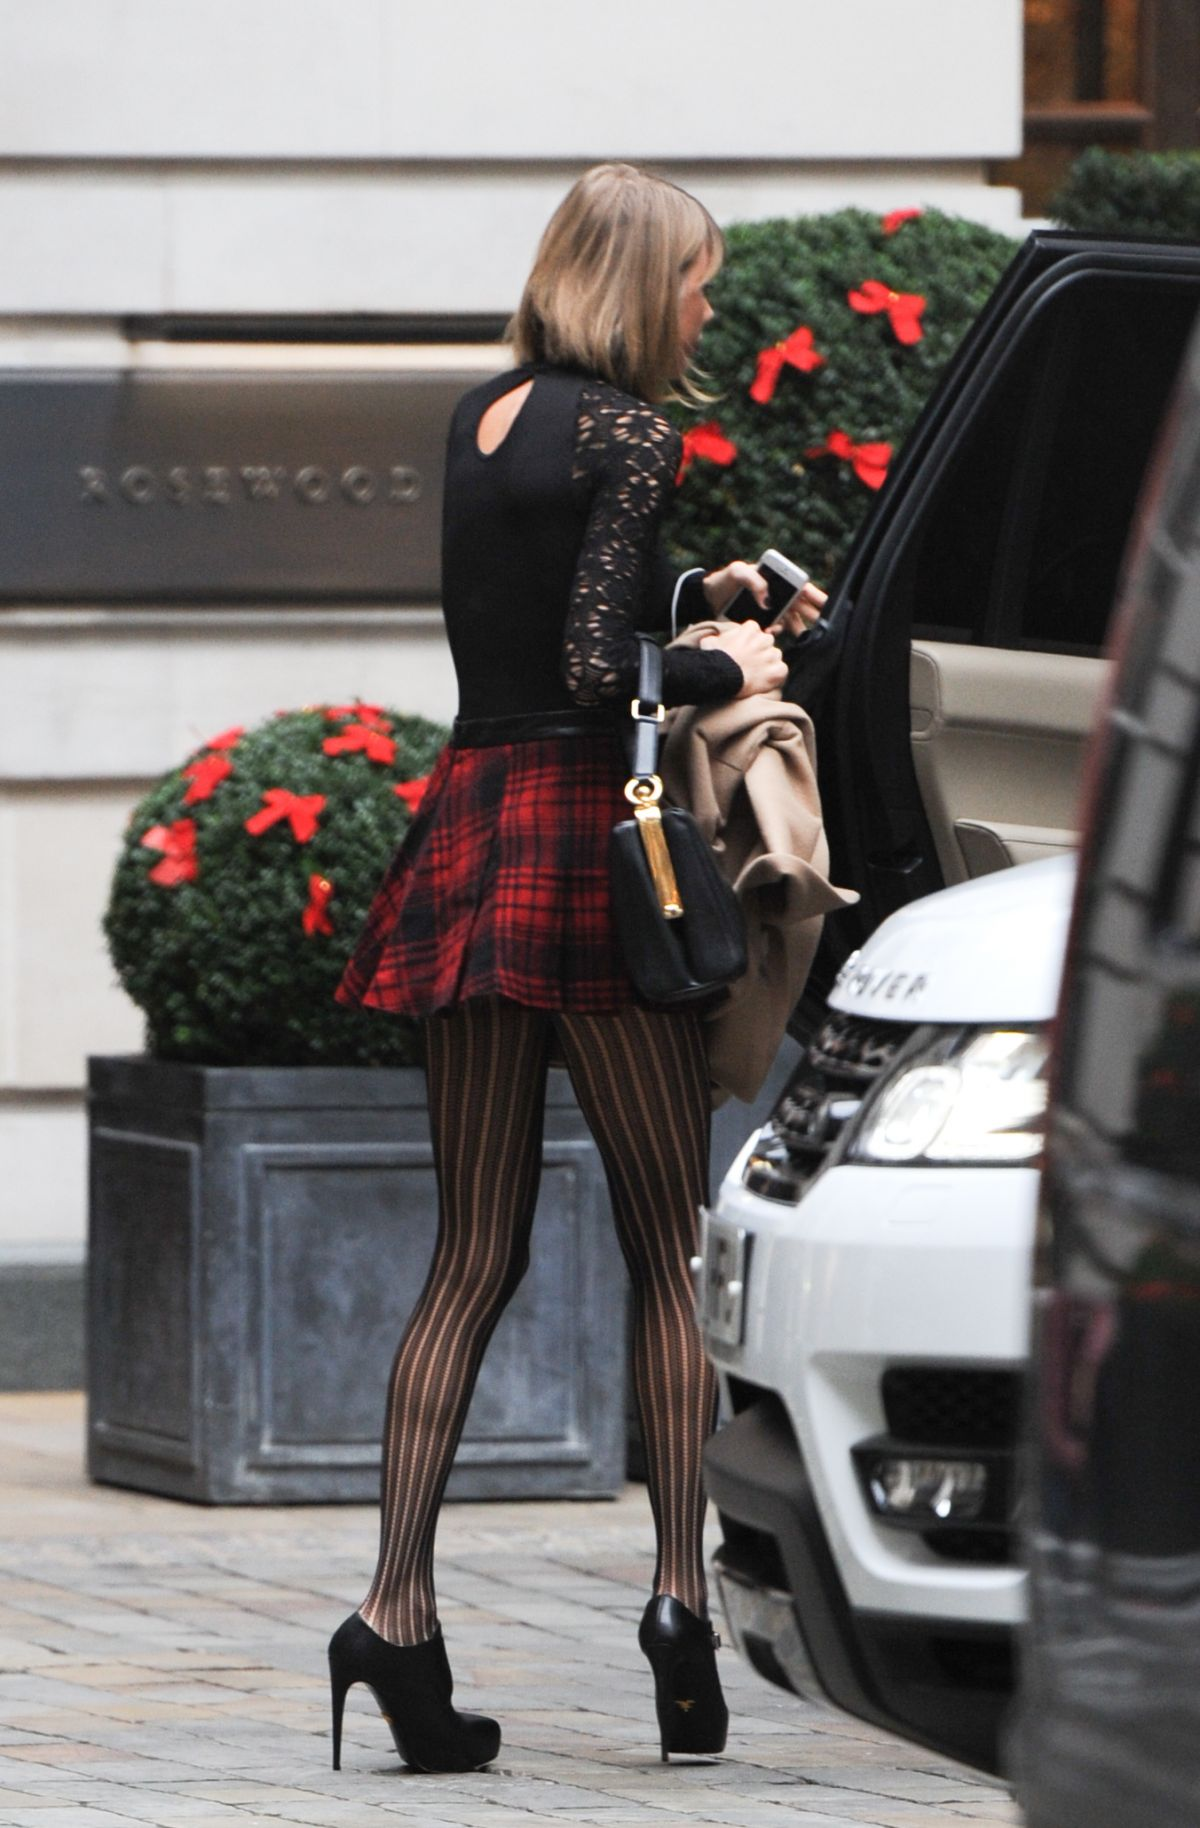 taylor swift arrivec back to her hotel in london